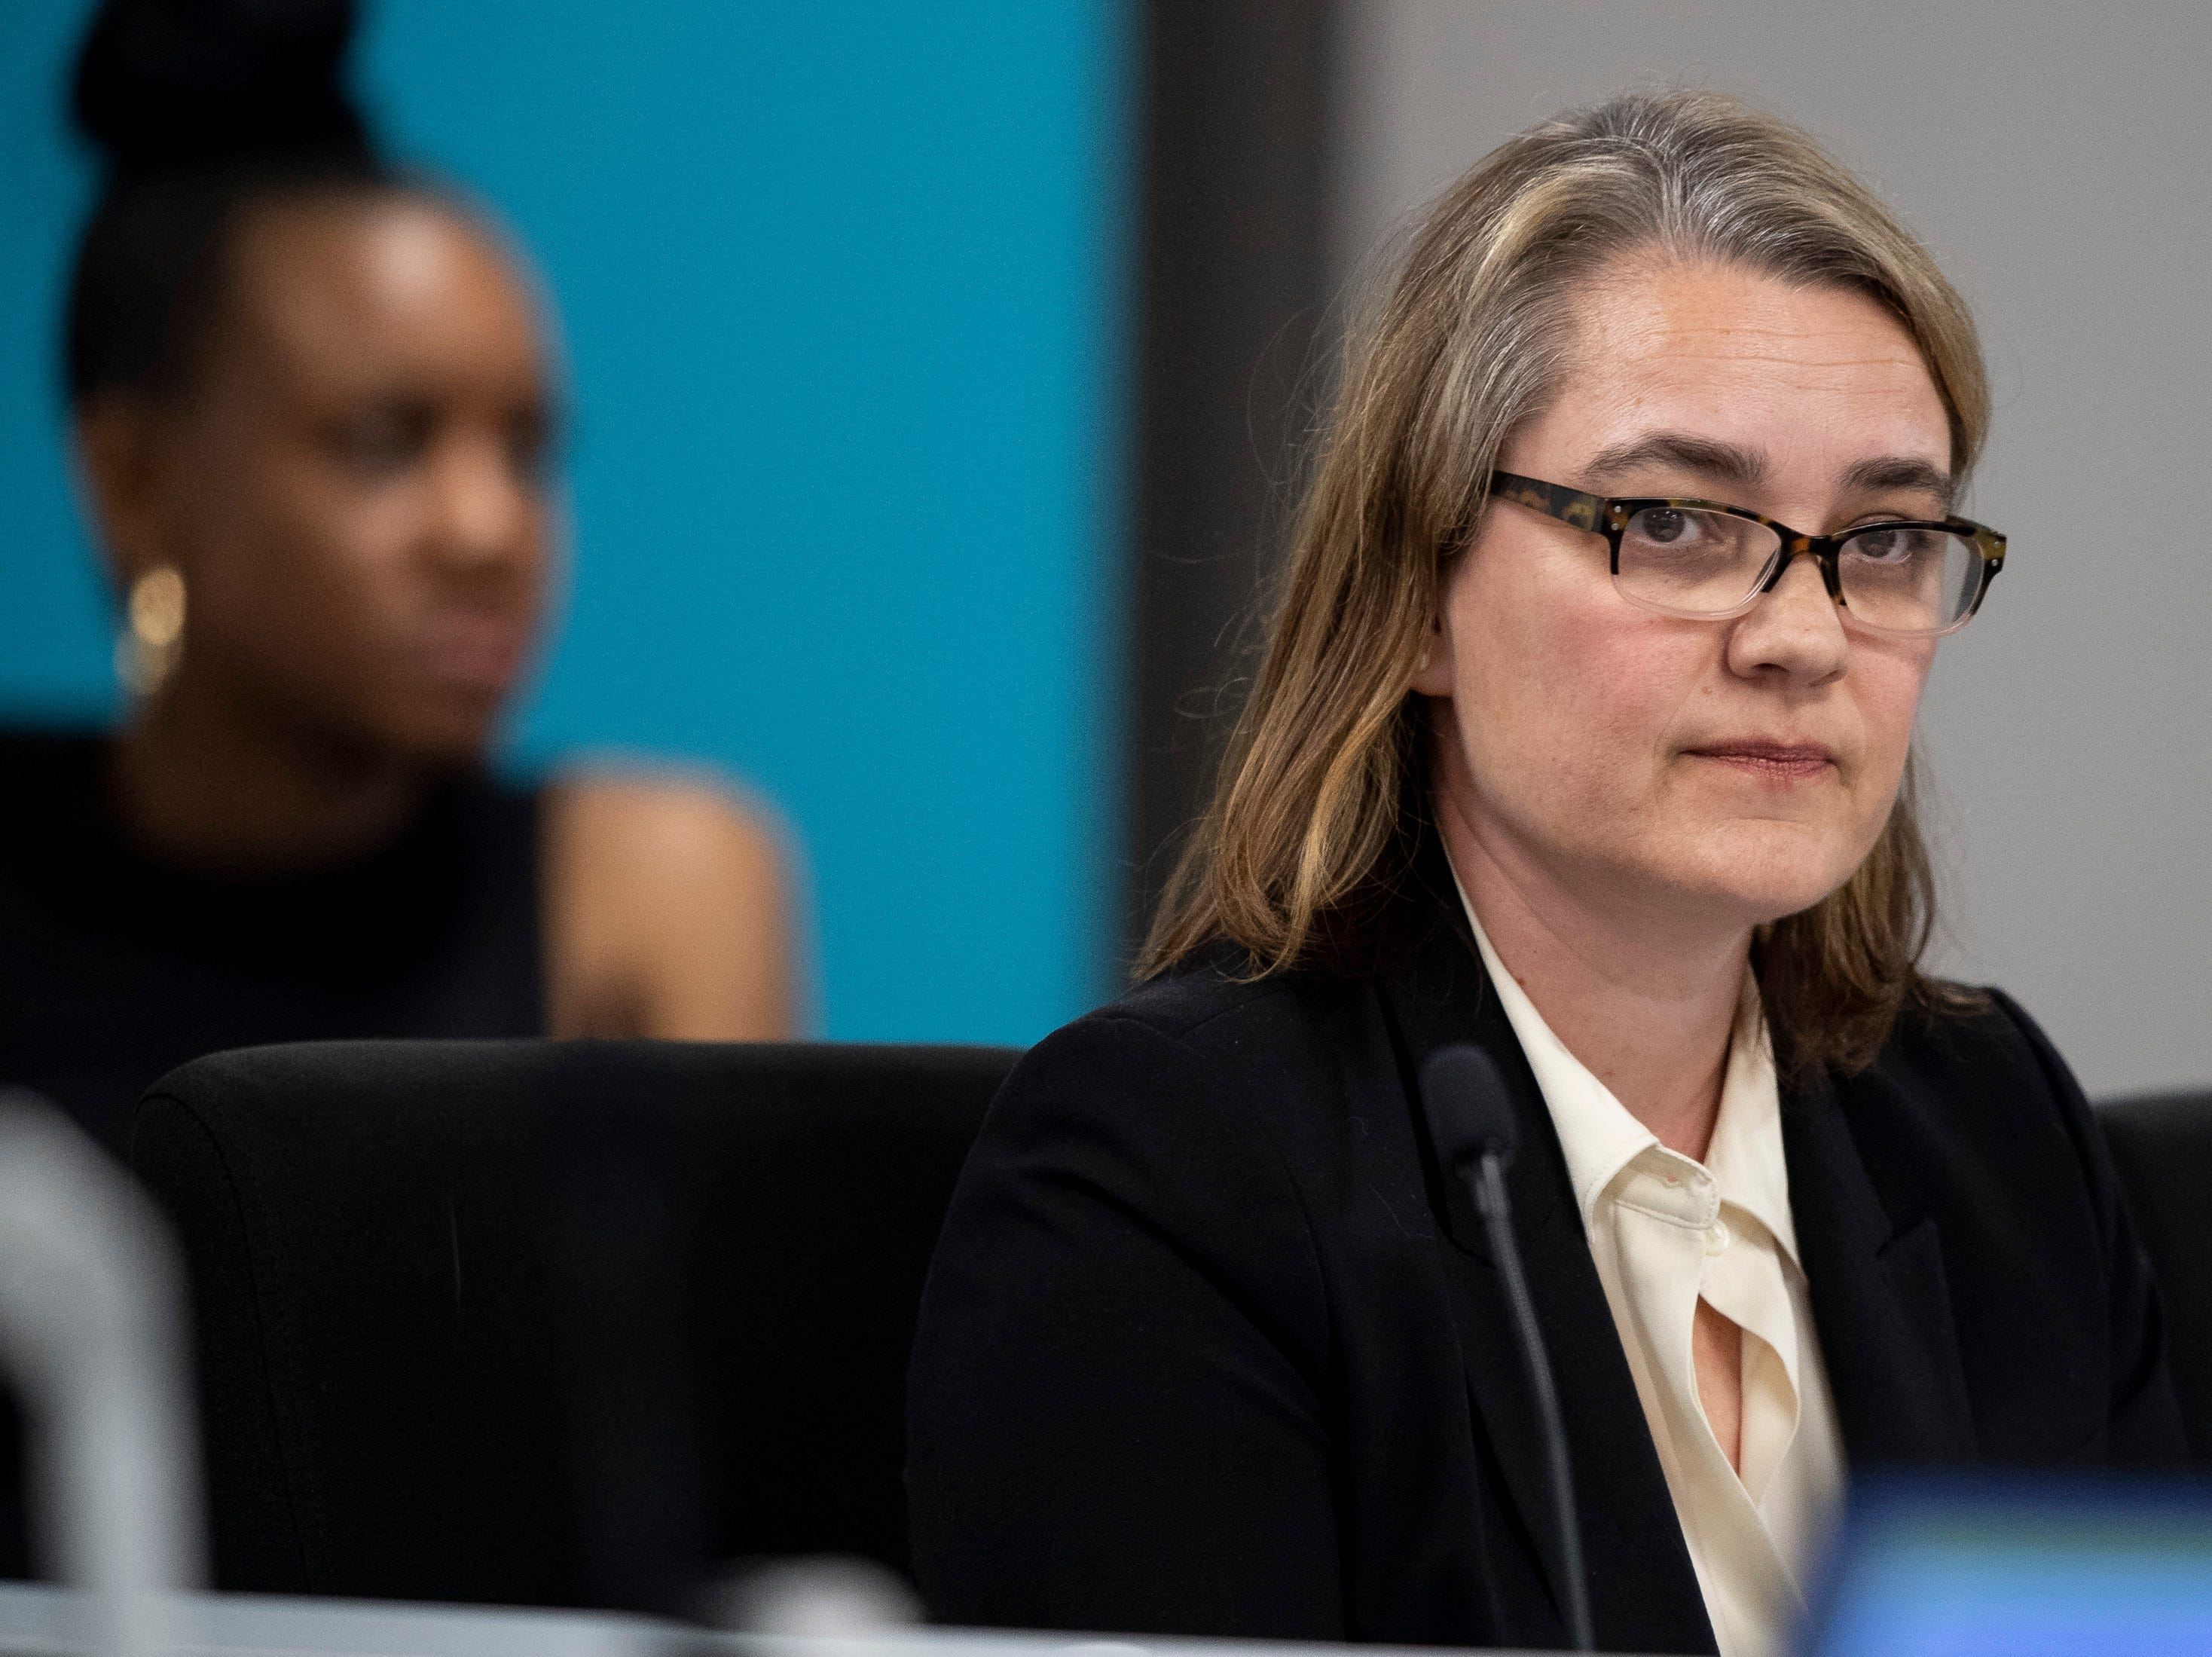 Nashville school board member Amy Frogge speaks about the termination of the contract of director Shawn Joseph during the MNPS Board of Public Education meeting at the Administration Building of Metropolitan Public Schools in Nashville, Tenn., Tuesday, April 9, 2019.